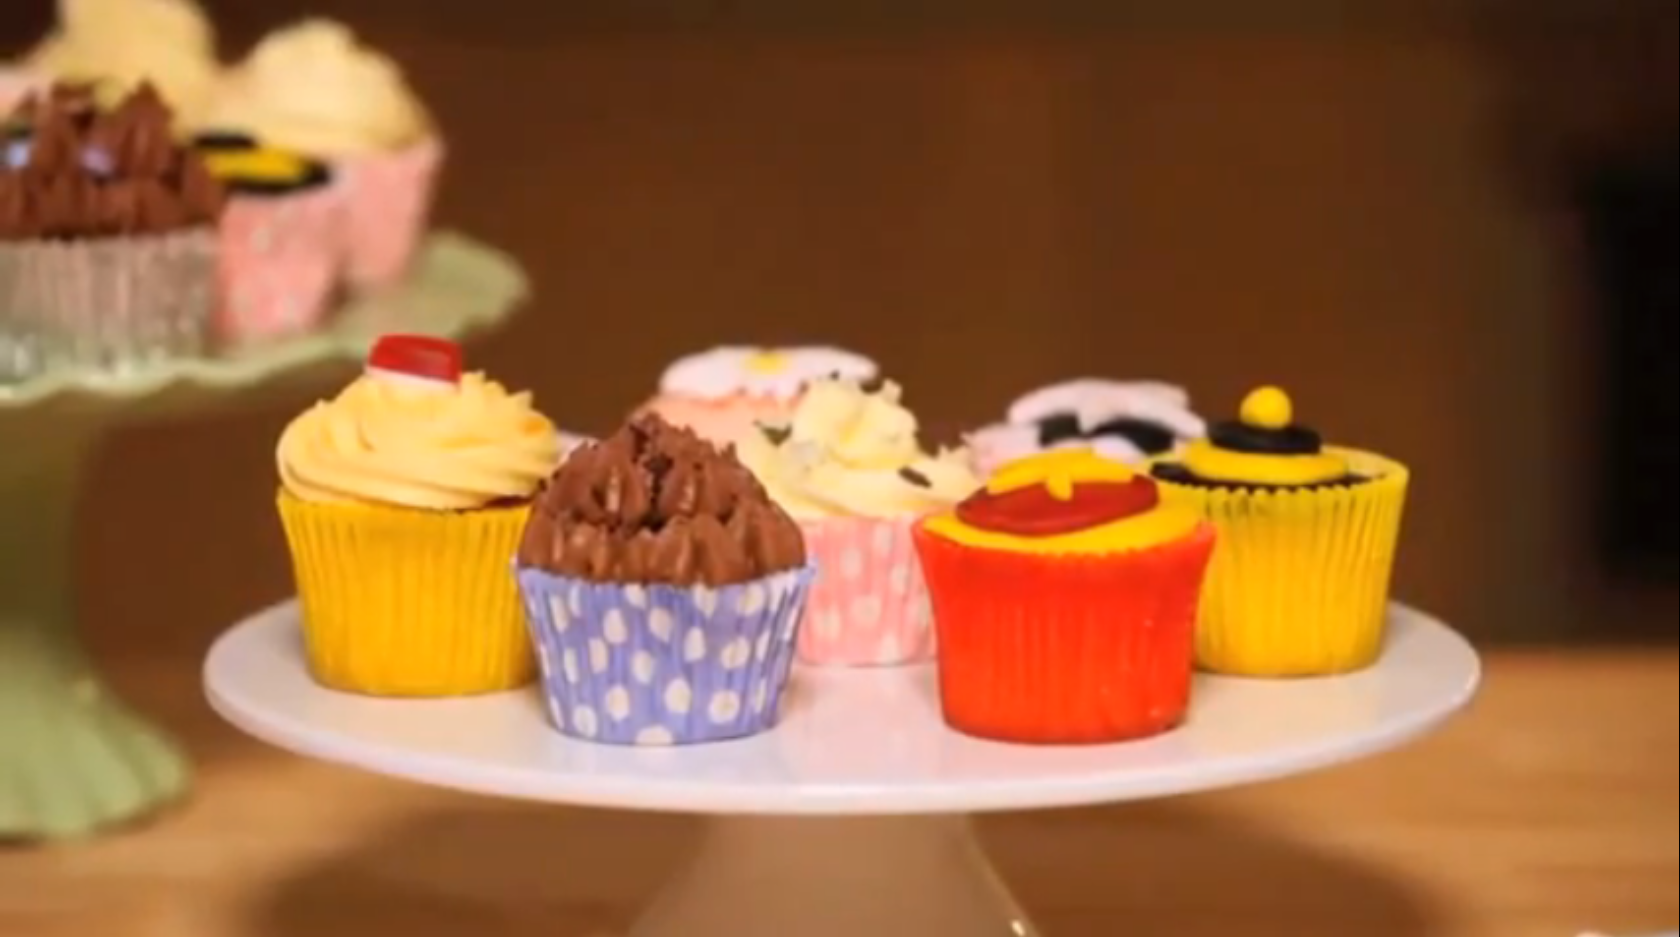 Fairy Cake Recipe Uk Plain Flour: Carrot Choc Chip Muffins